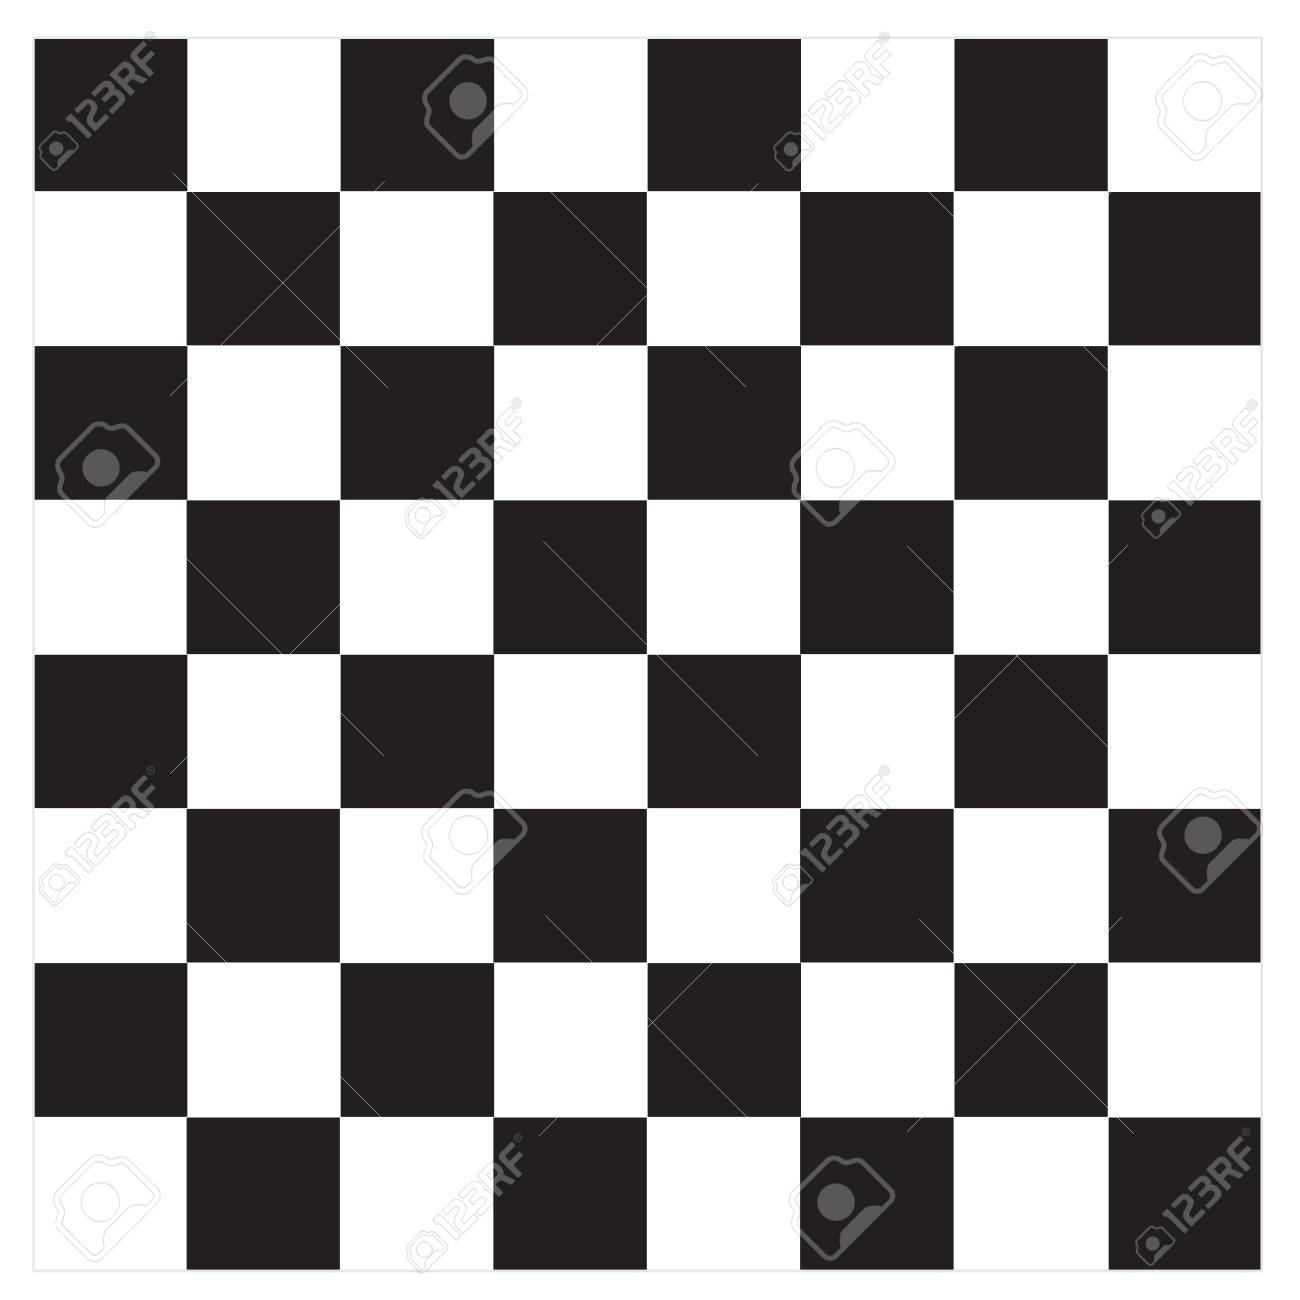 Vector Modern Empty Chess Board Background Ready Layout For Royalty Free Cliparts Vectors And Stock Illustration Image 98516747